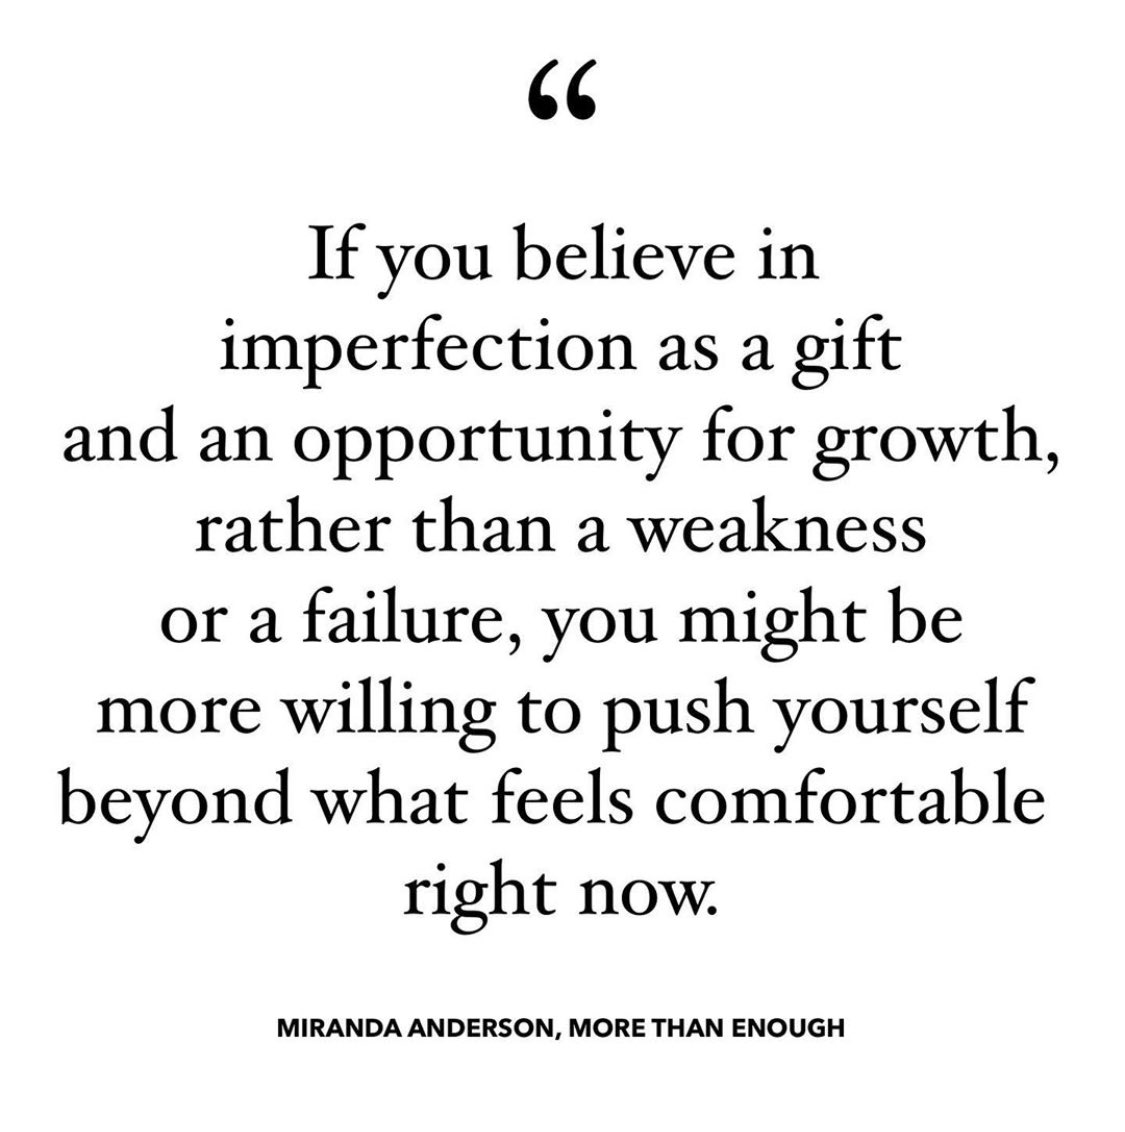 If you believe in imperfection as a gift ....